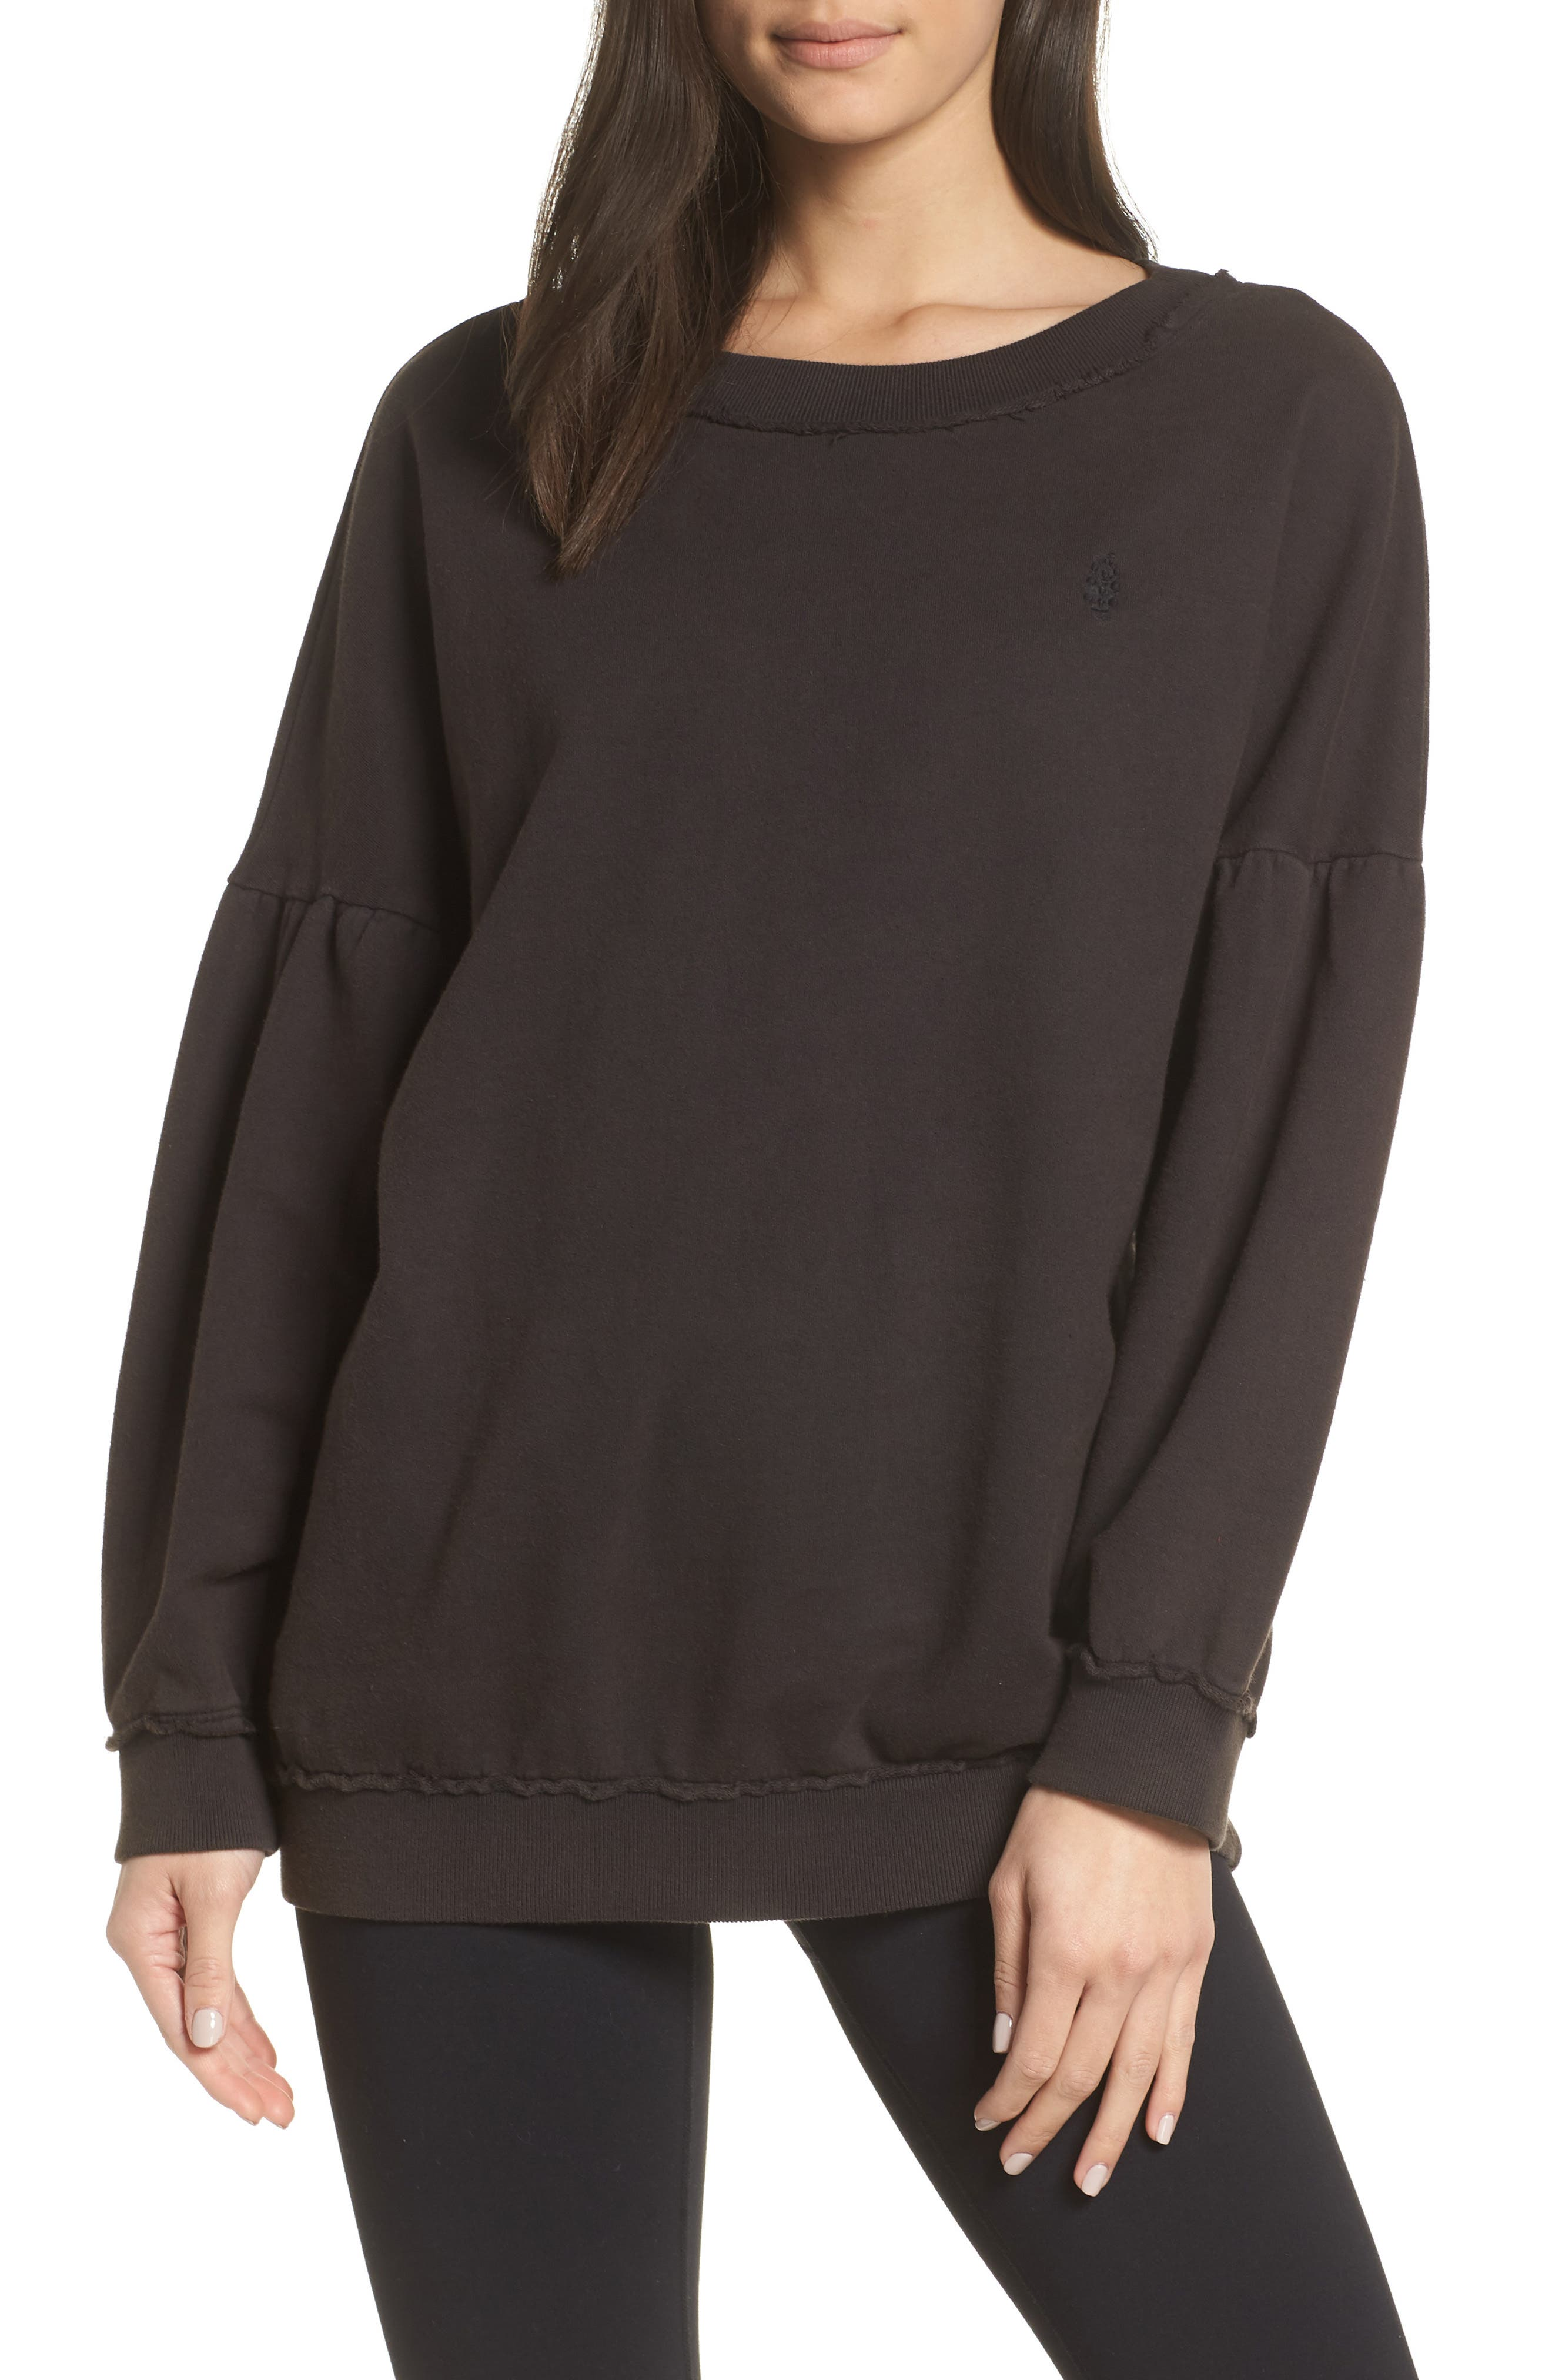 Free People Movement Make It Count Pullover, Black